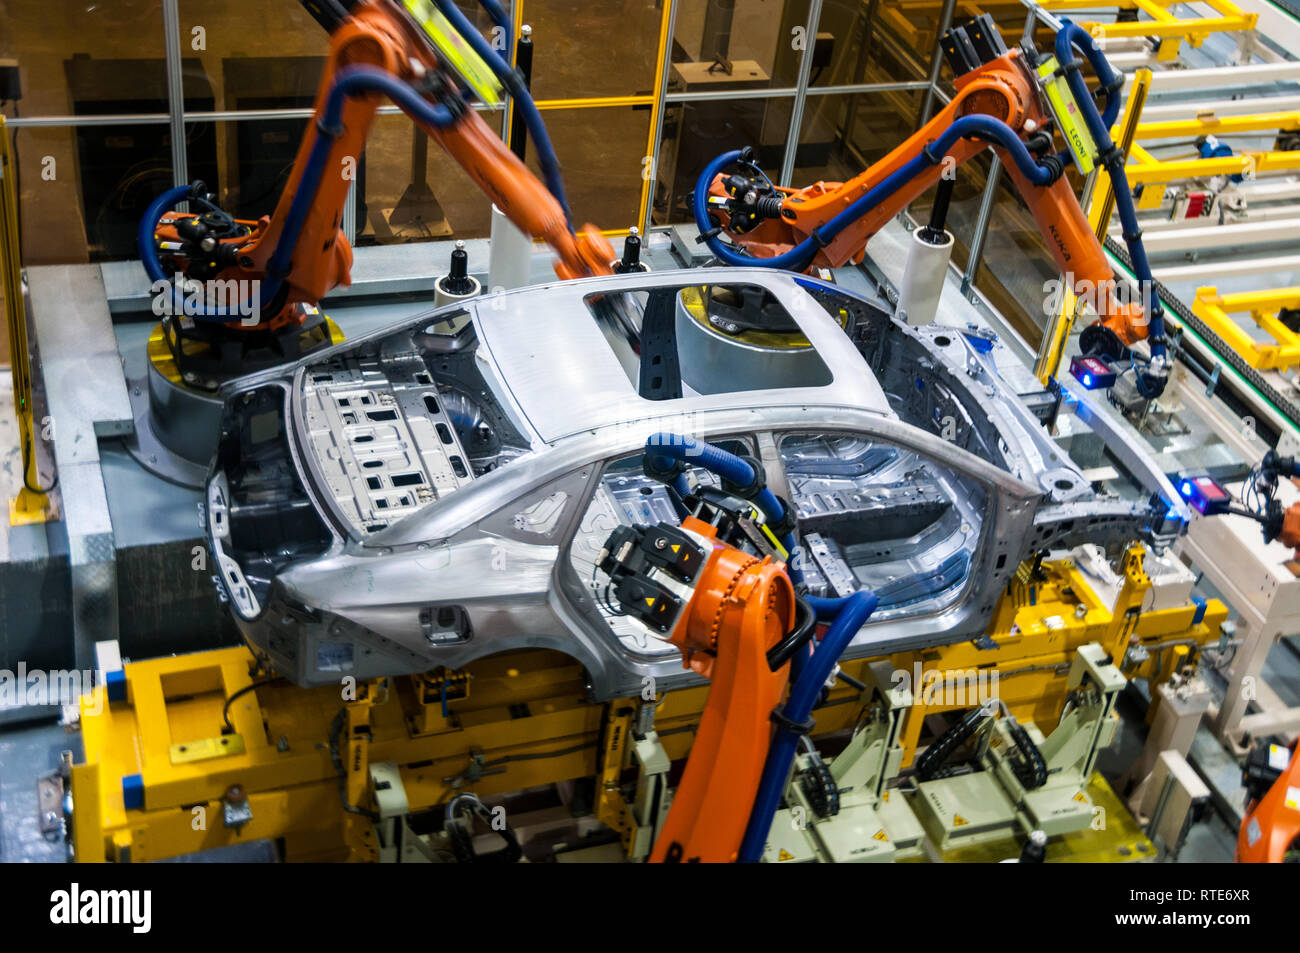 Guangzhou, China. 1st March, 2019. Robots working and measuring on the production line at the Guangzhou factory. Official launch of the GAC NE Aion S electric car billed as the Chinese Tesla Model 3 killer at the GAC NE factory in Guangzhou, Guangdong Province, China. Mark Andrews/Alamy Live News - Stock Image